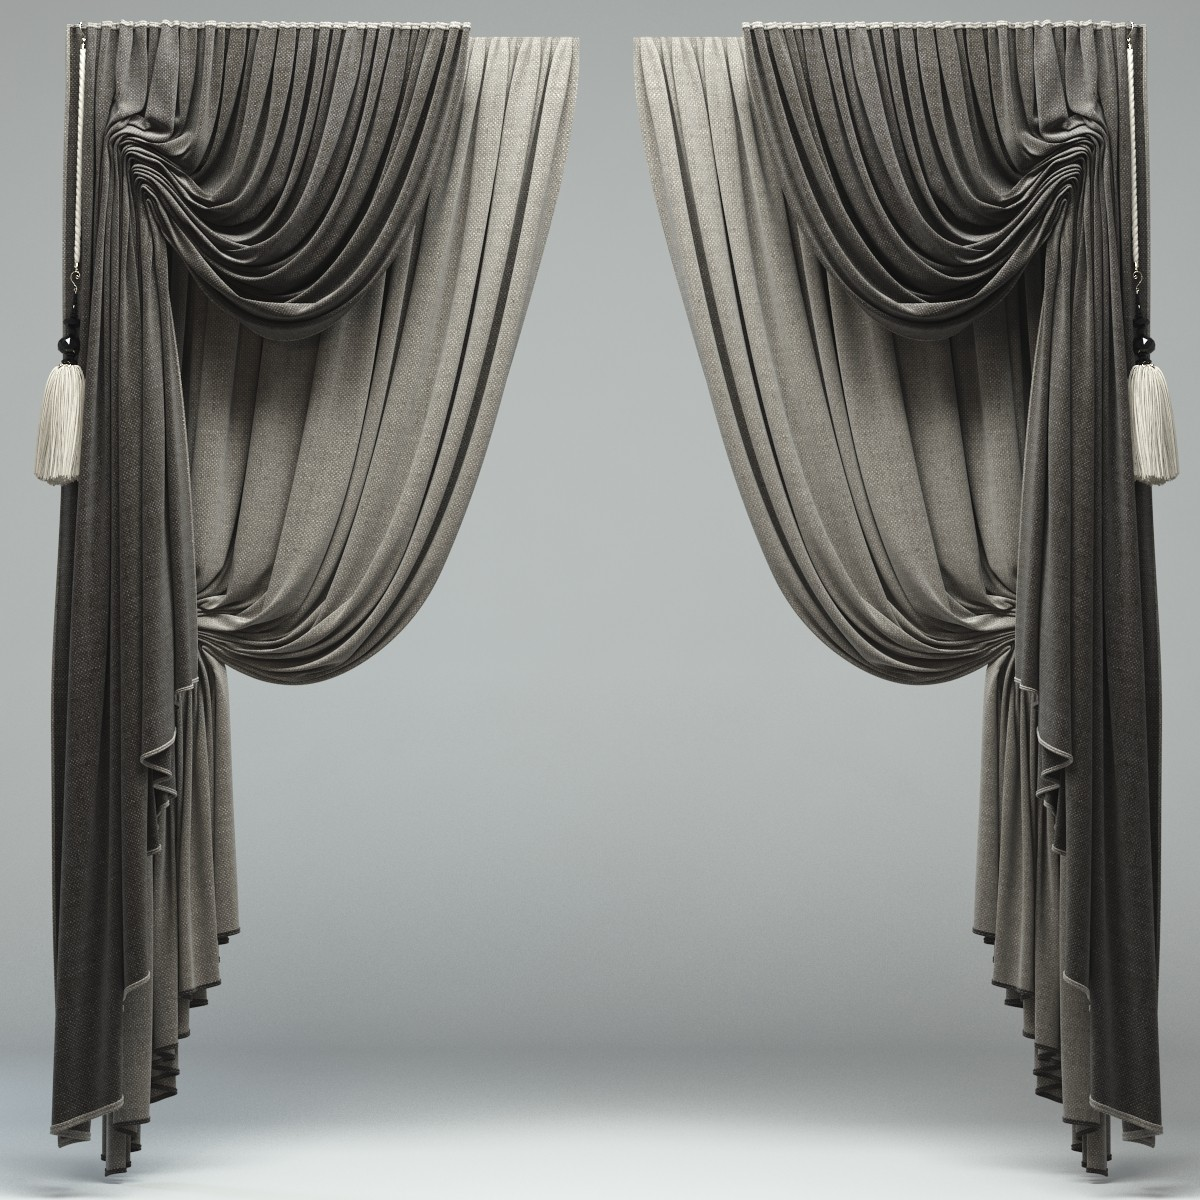 Curtain Design Ideas curtain design ideas Modern